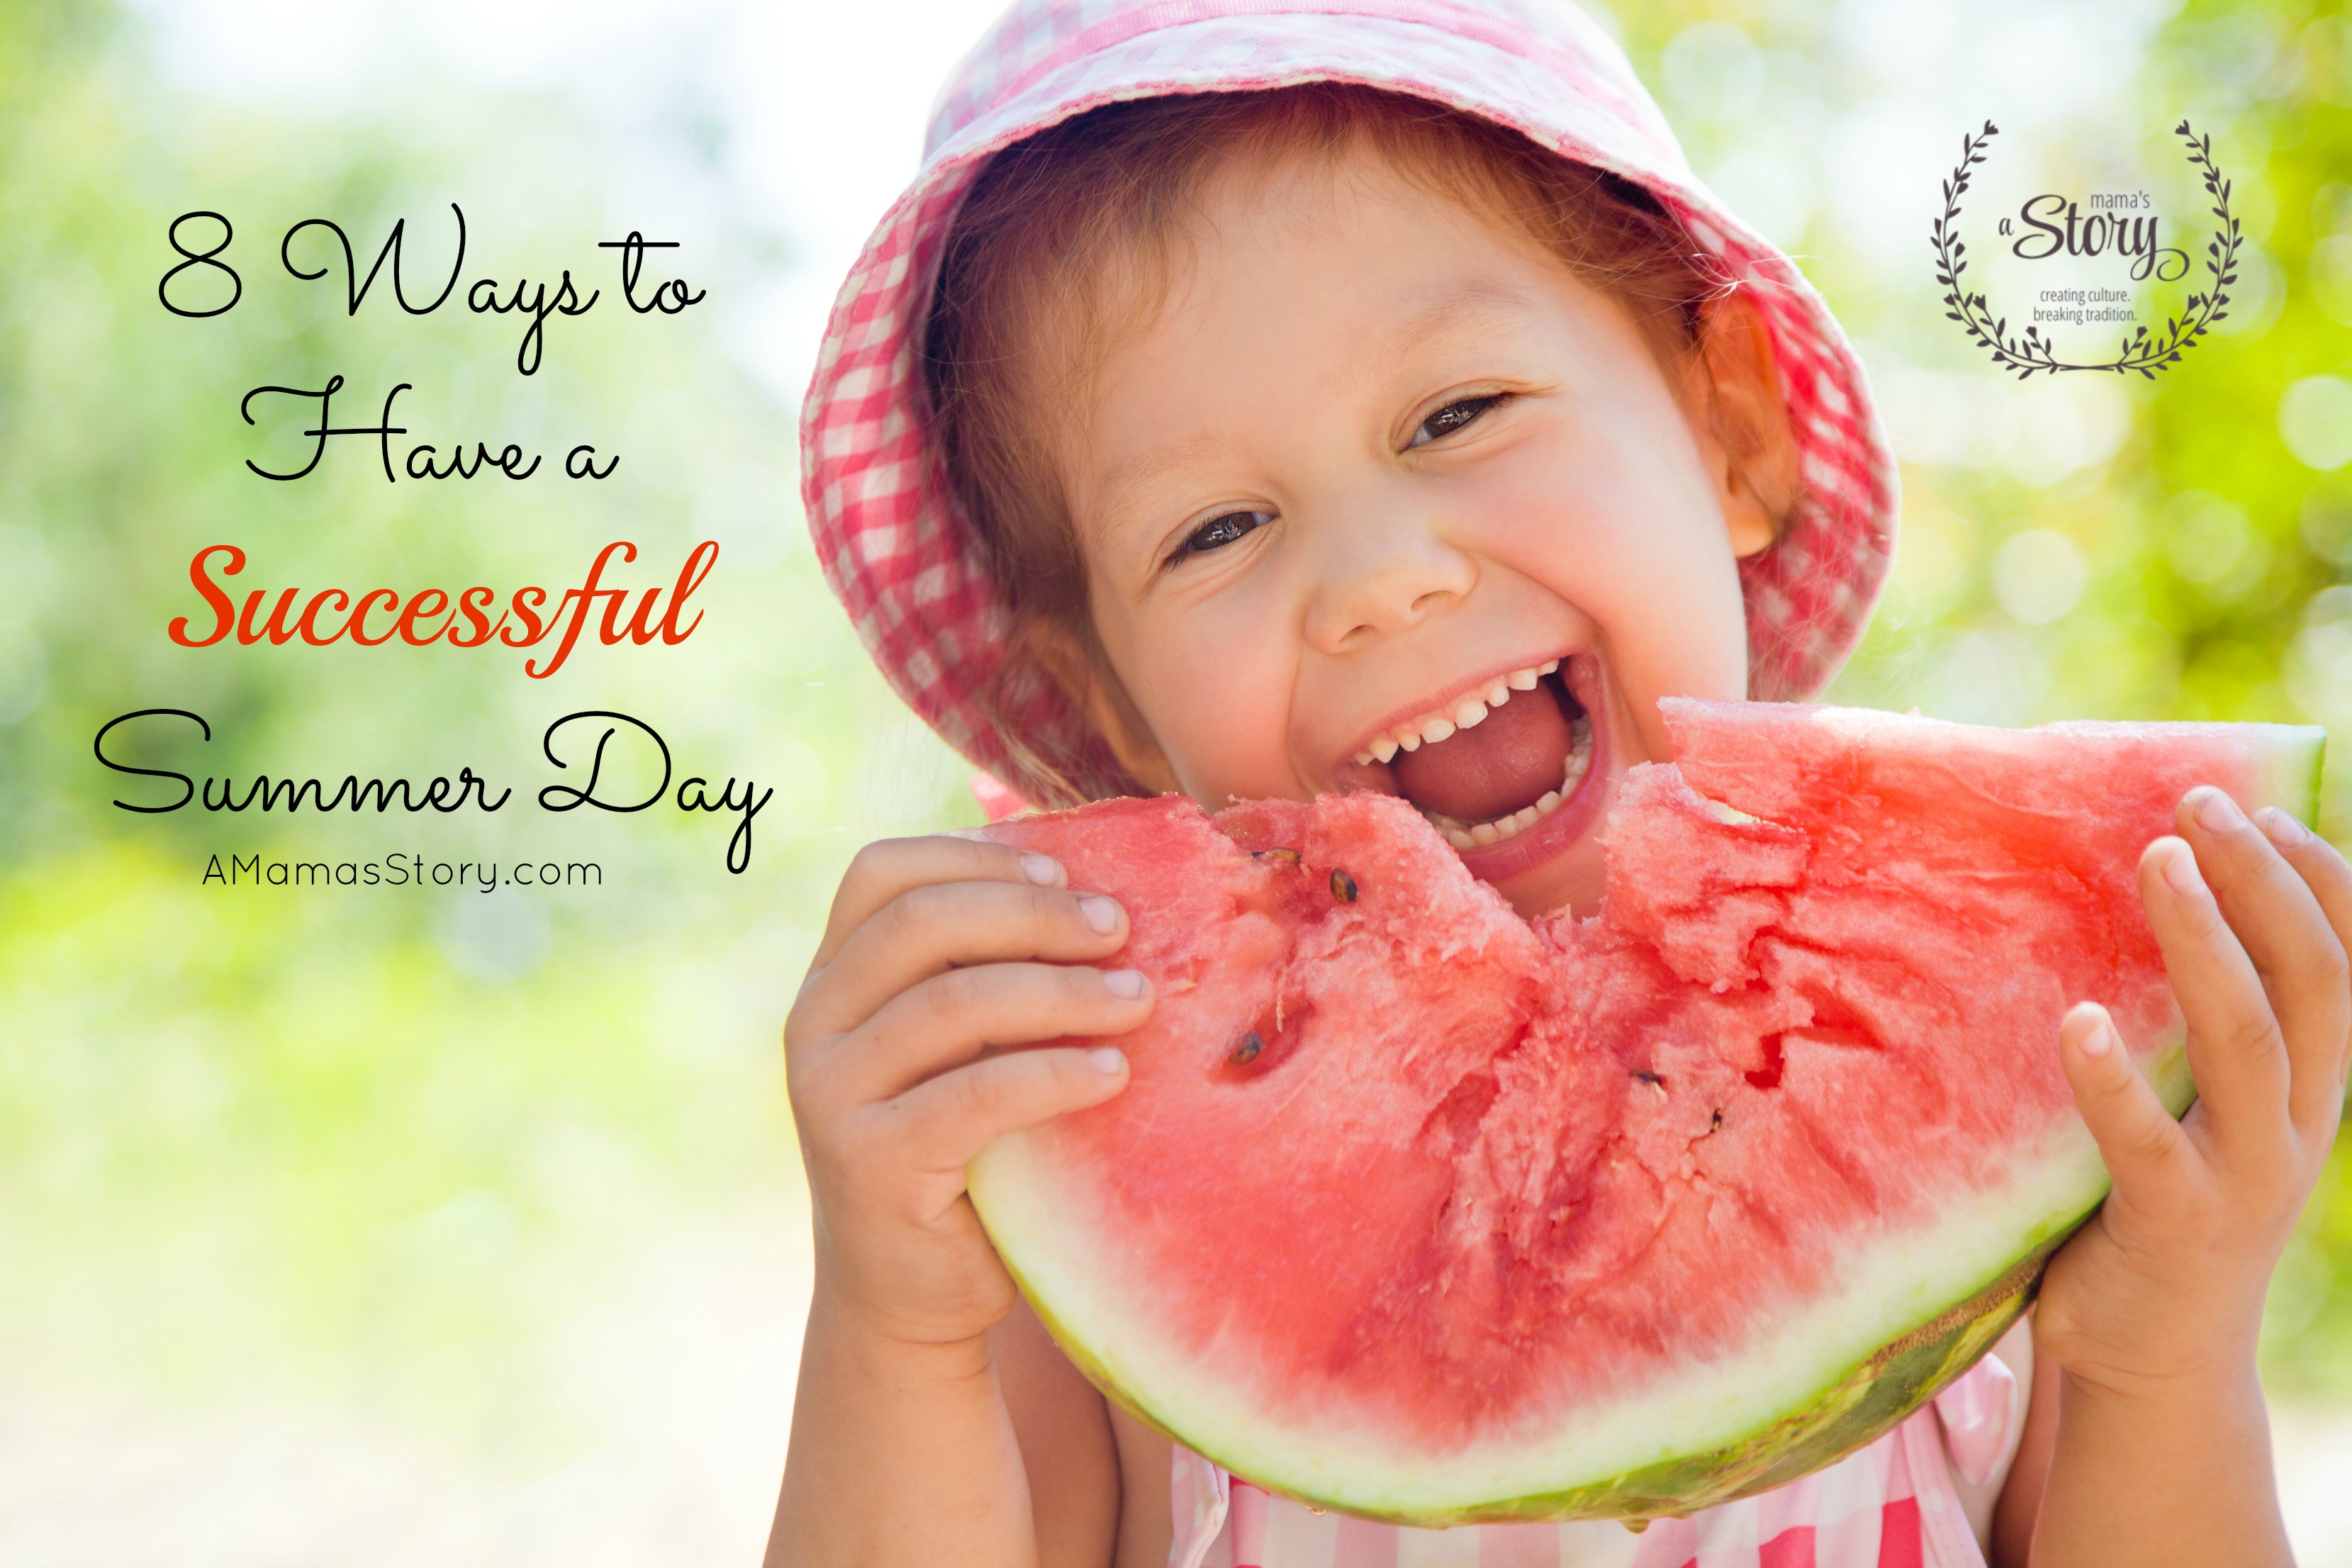 Eight Ways to Have a Successful Summer Day